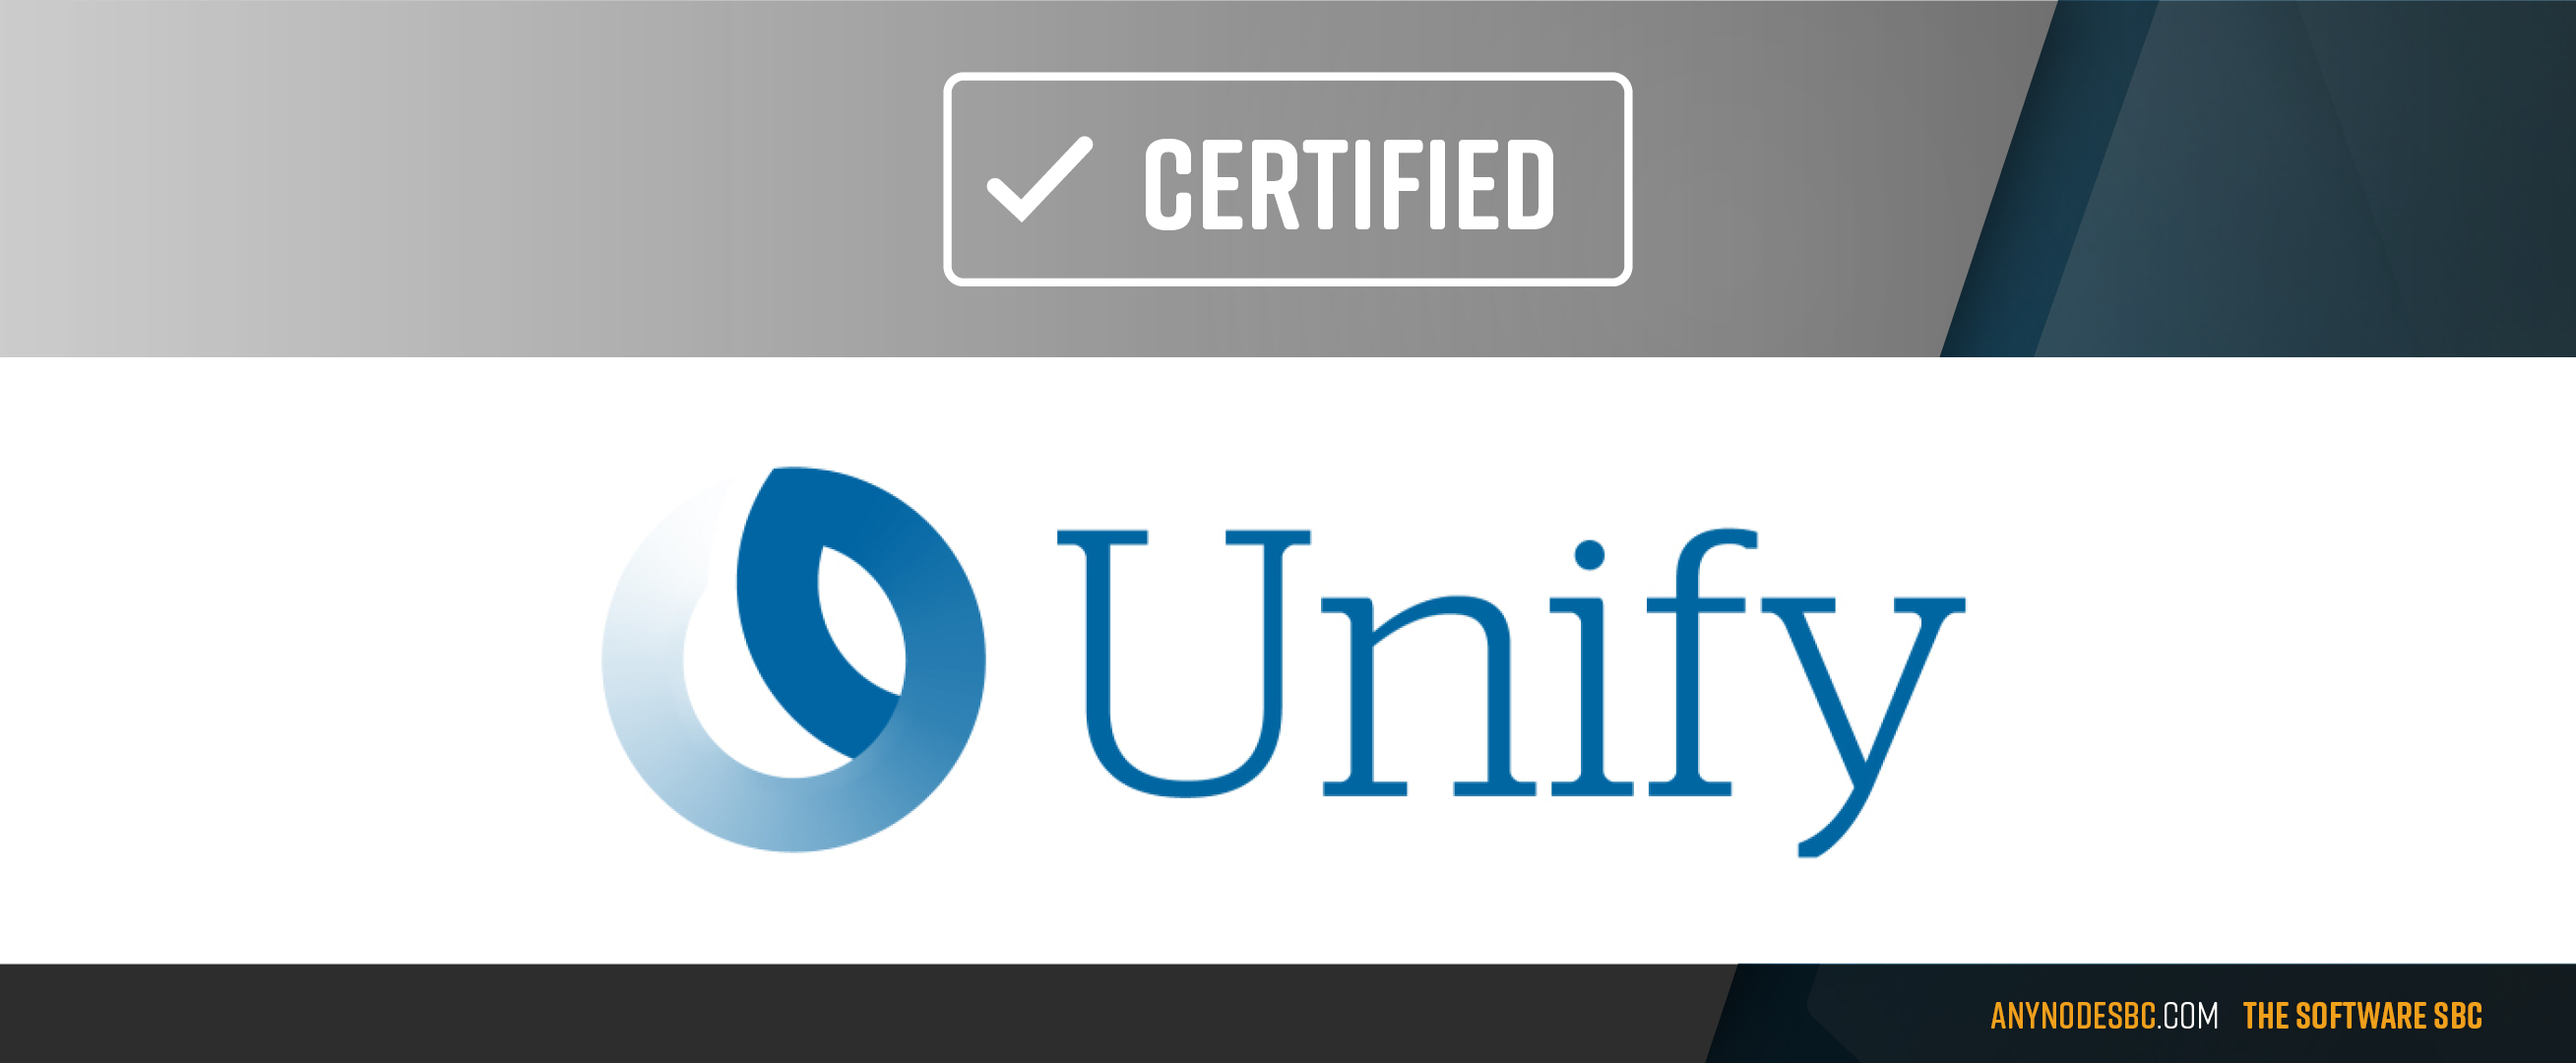 Atos Unify Ready – New certifications for TE-SYSTEMS for anynode SBC